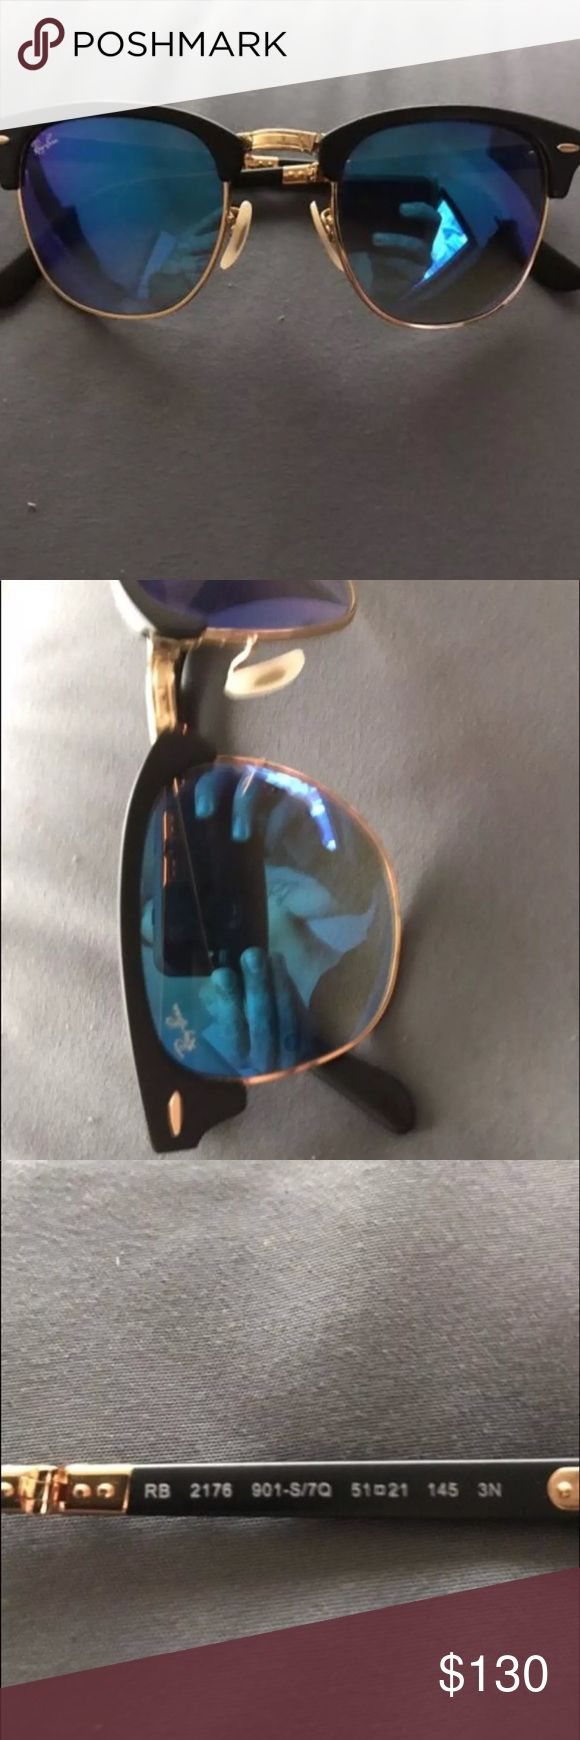 New 100% authentic ray ban clubmaster sunglasses Brand new never worn comes with case and polishing cloth ex bought them for me and just not my style nor do I want a reminder of her. Priced to sell! No low ball offers! Ray-Ban Accessories Sunglasses